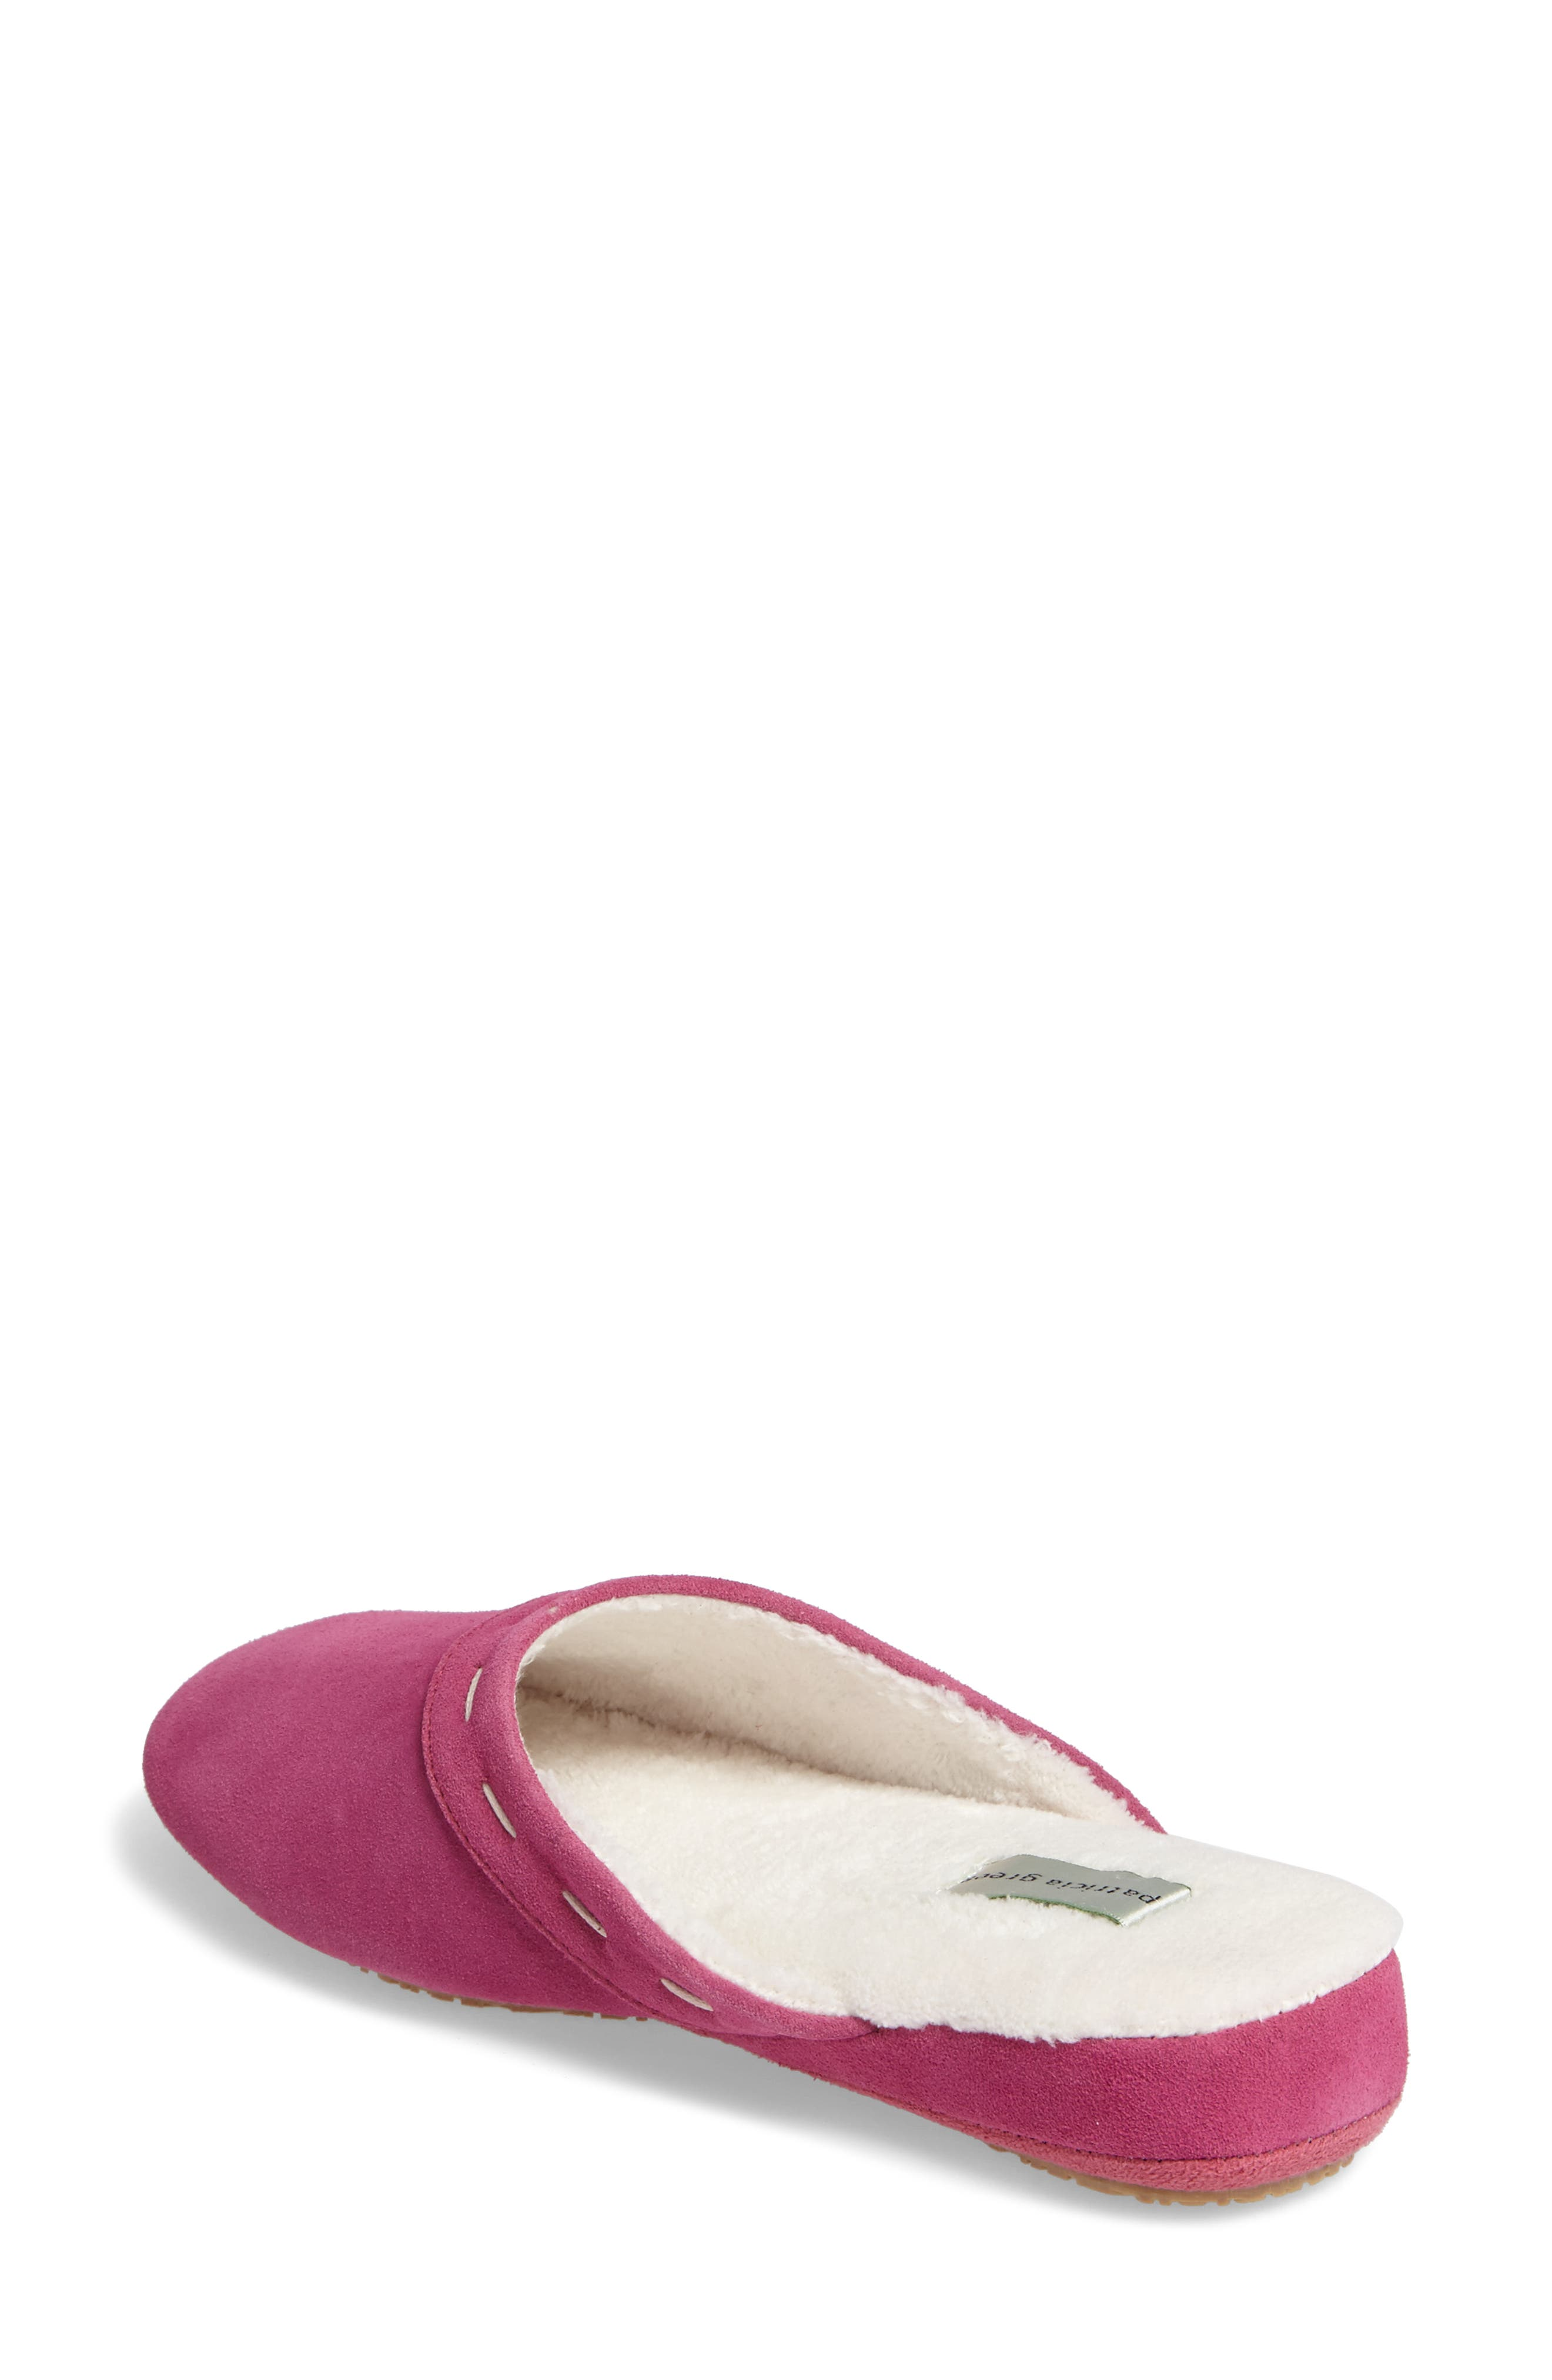 Mayfair Wedge Slipper,                             Alternate thumbnail 2, color,                             Hot Pink Suede